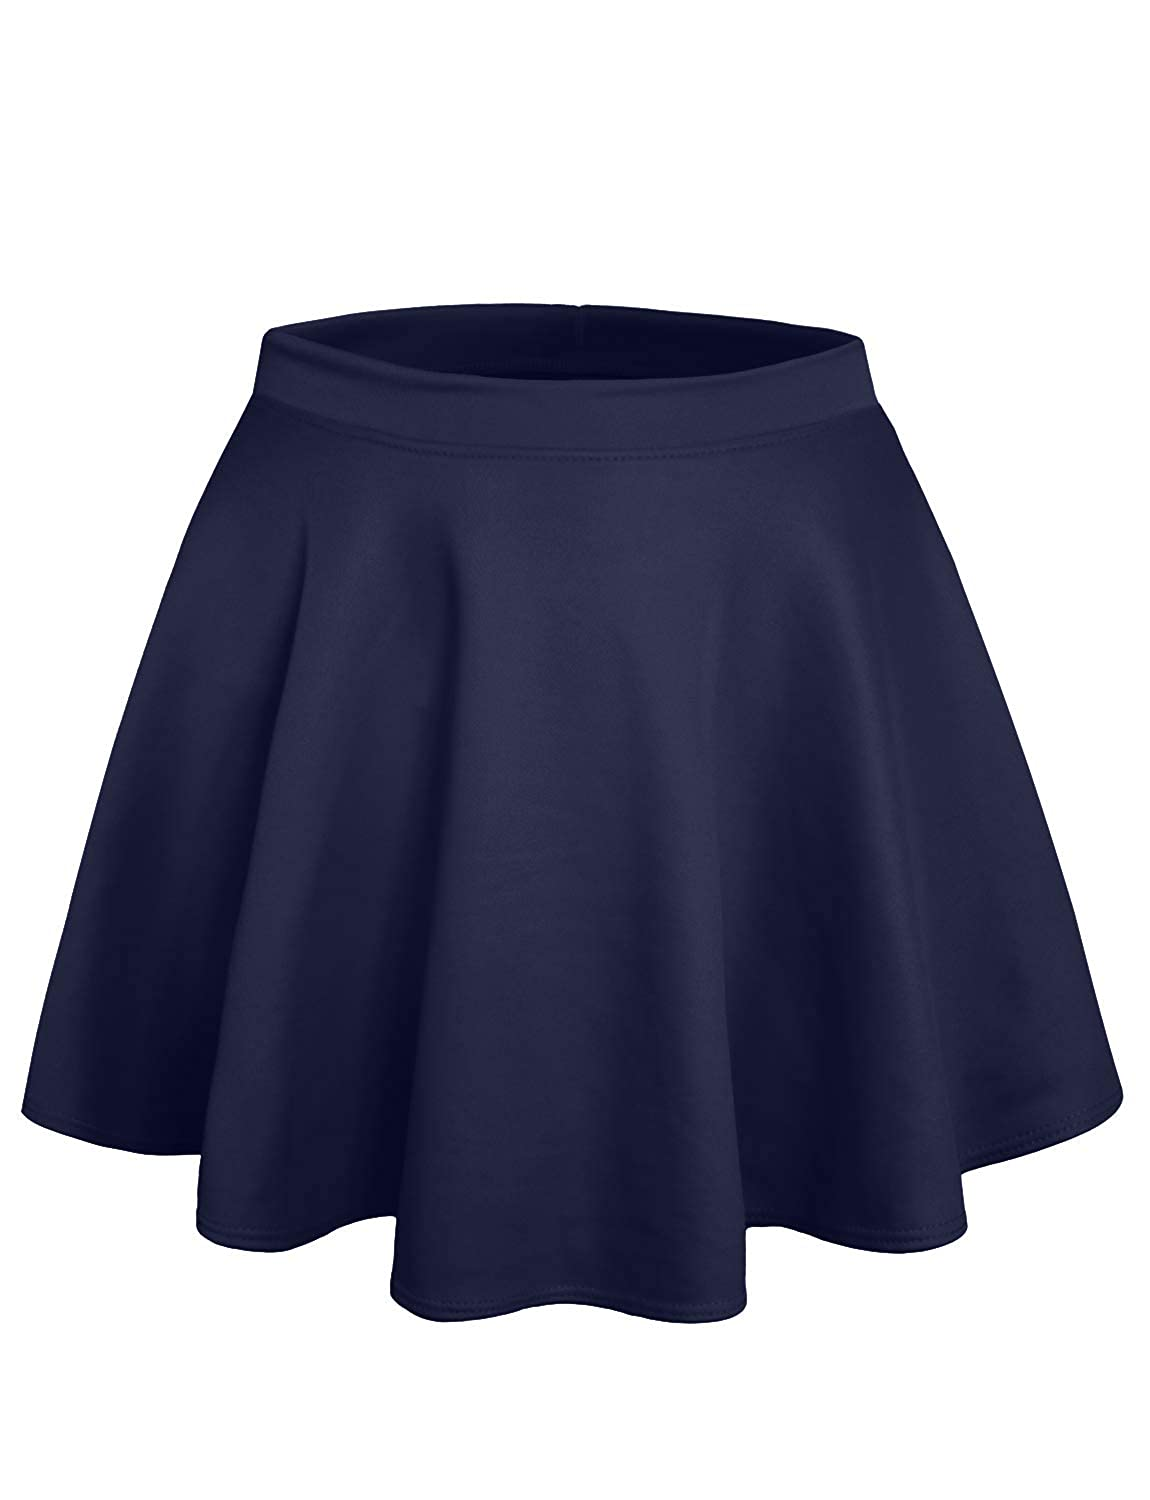 NE PEOPLE Stretchy Casual Mini Flared Skater Skirt Made in USA S-3XL